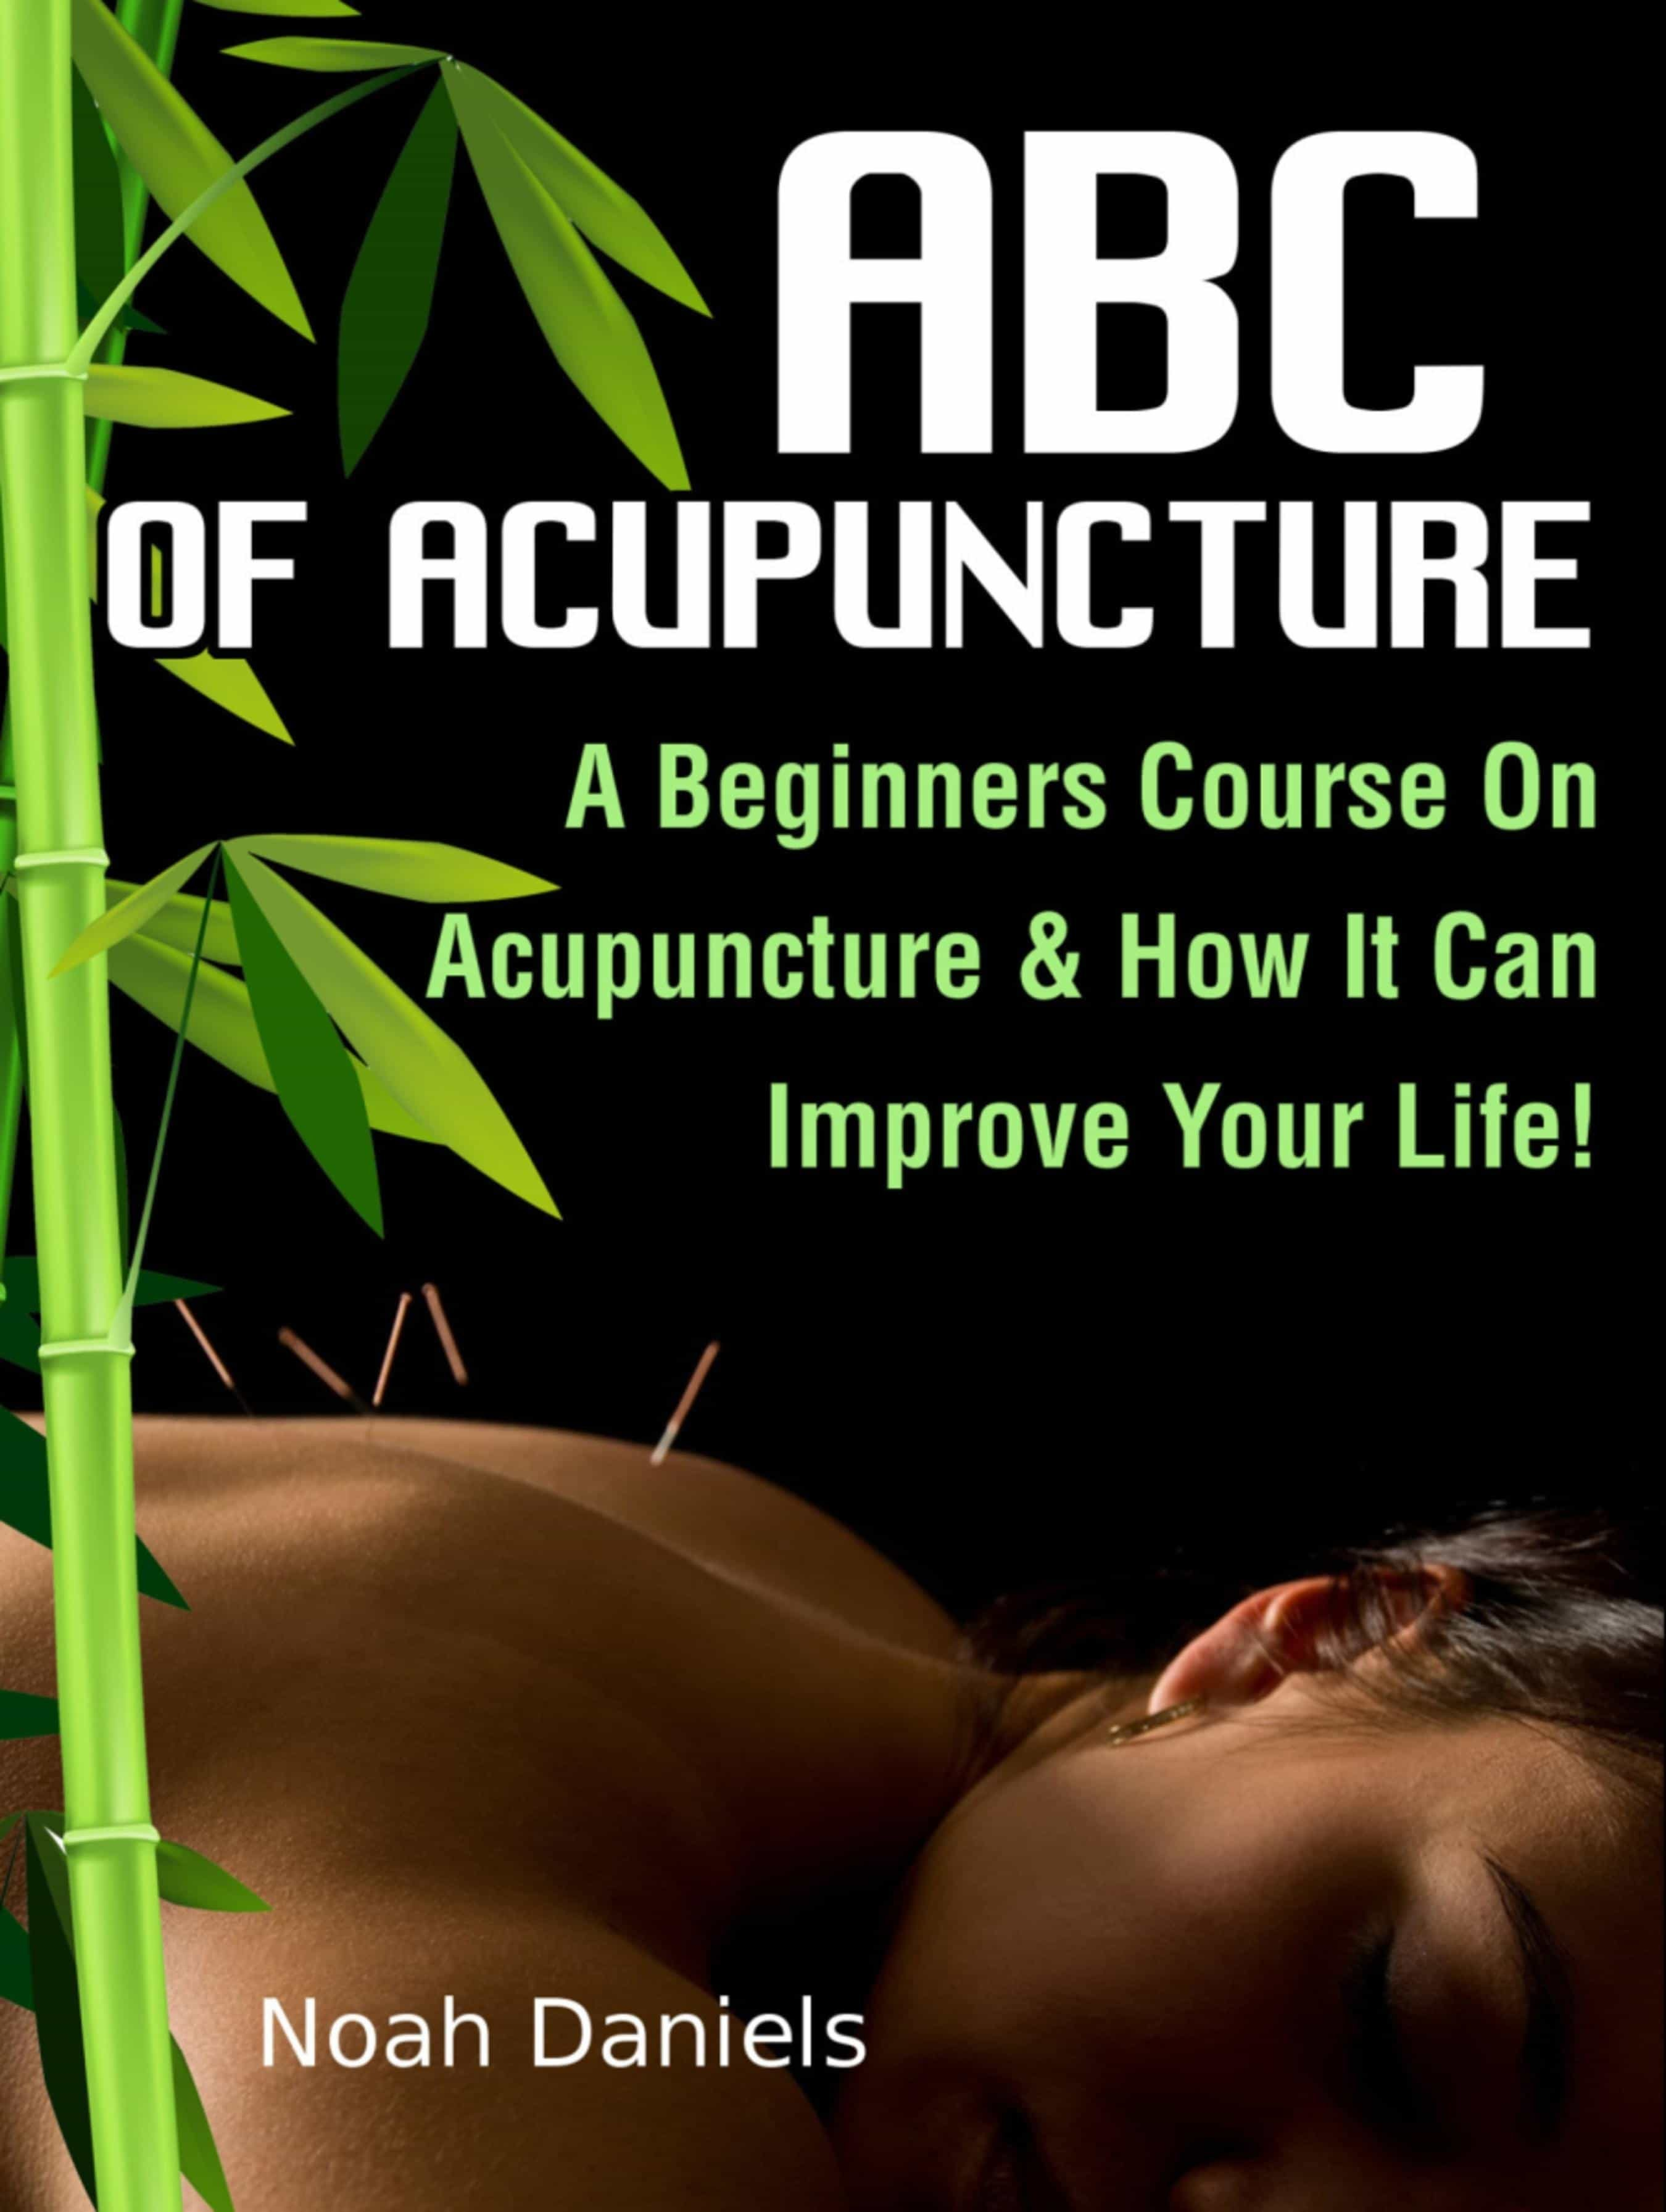 ABC OF ACUPUNCTURE